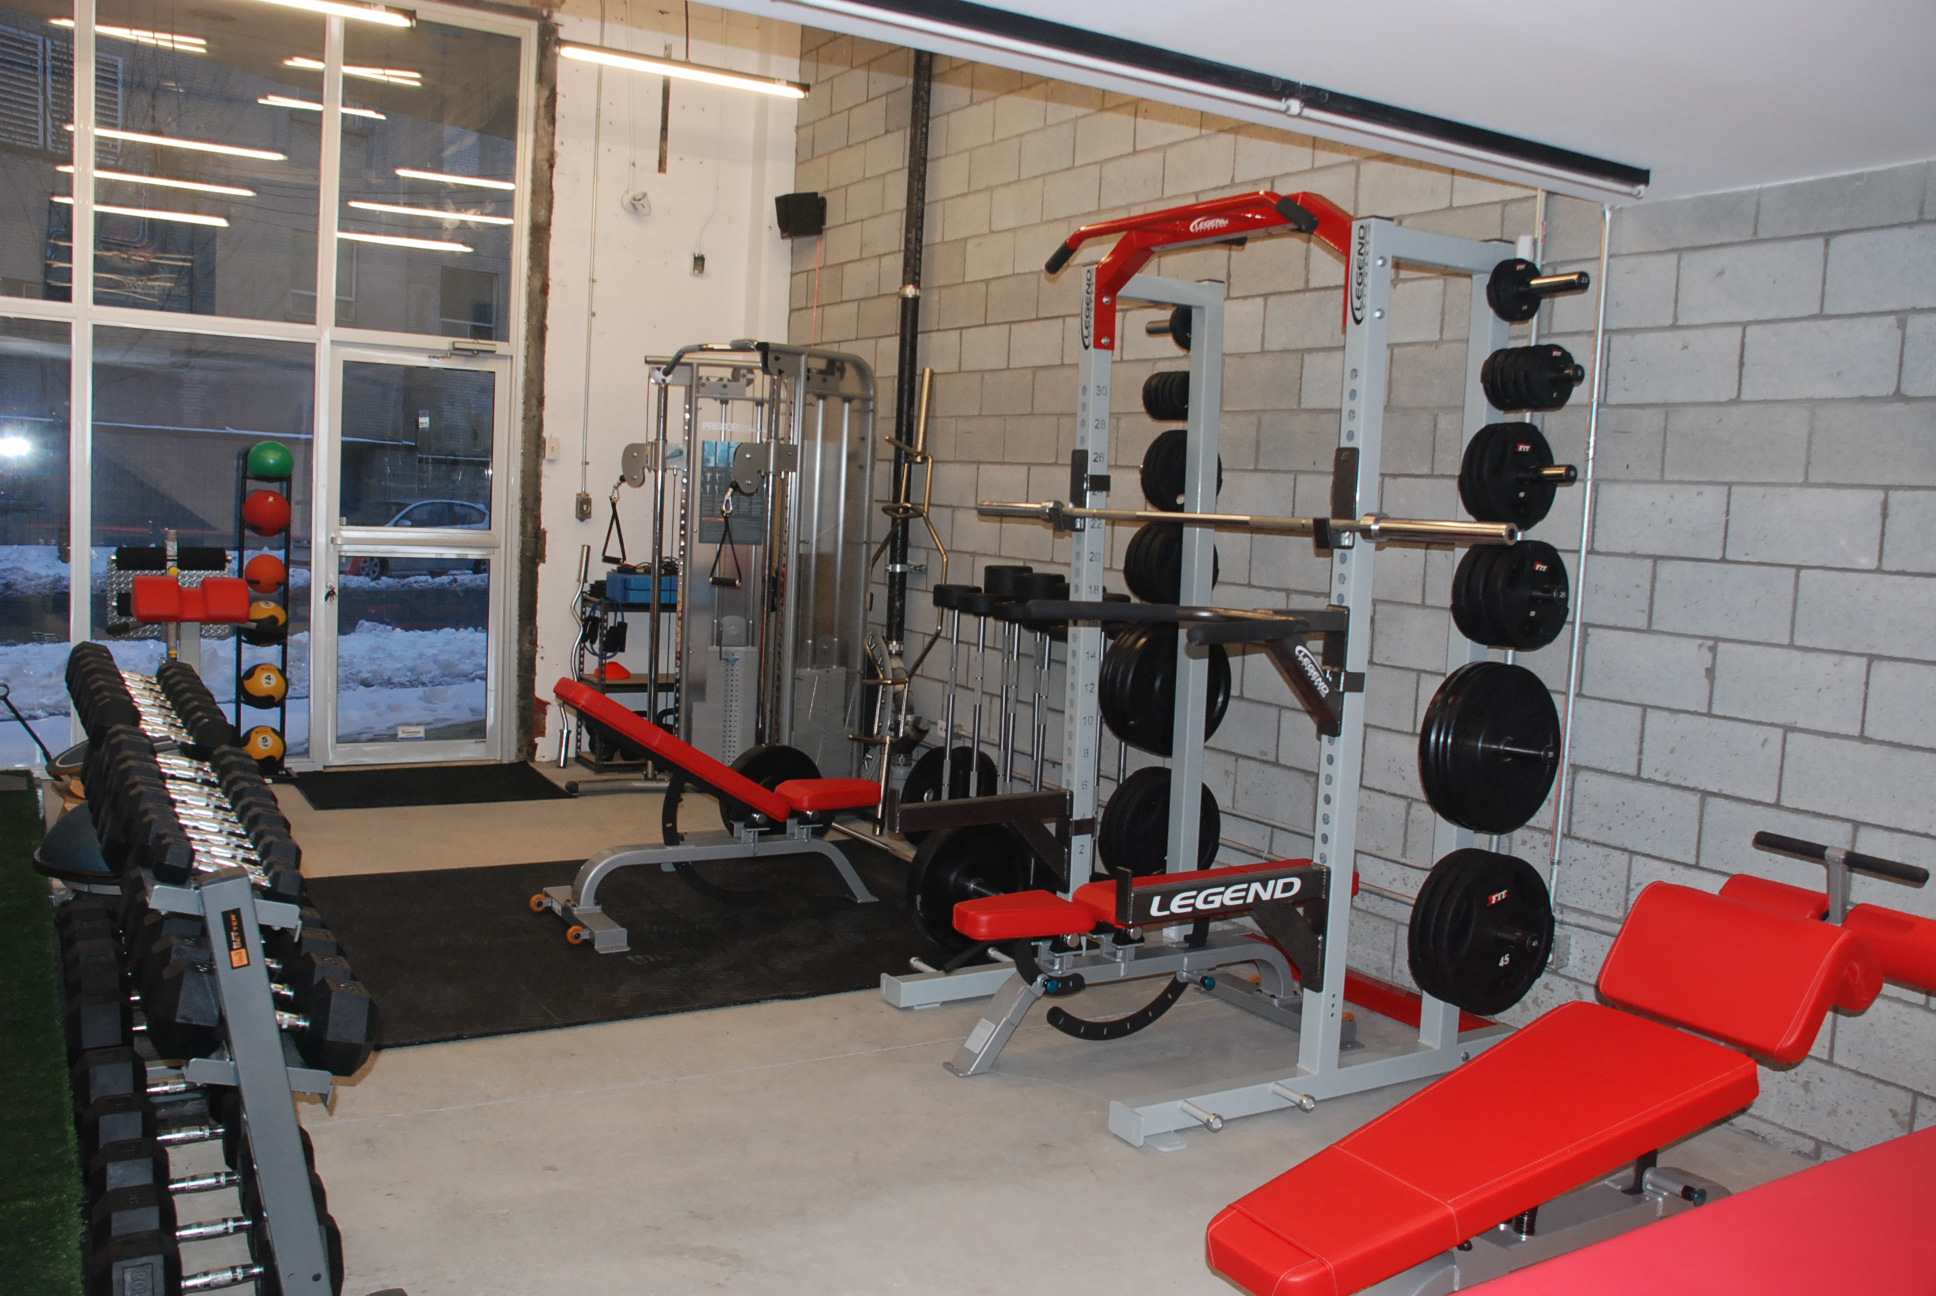 Legend Half Rack & Functional Trainer.